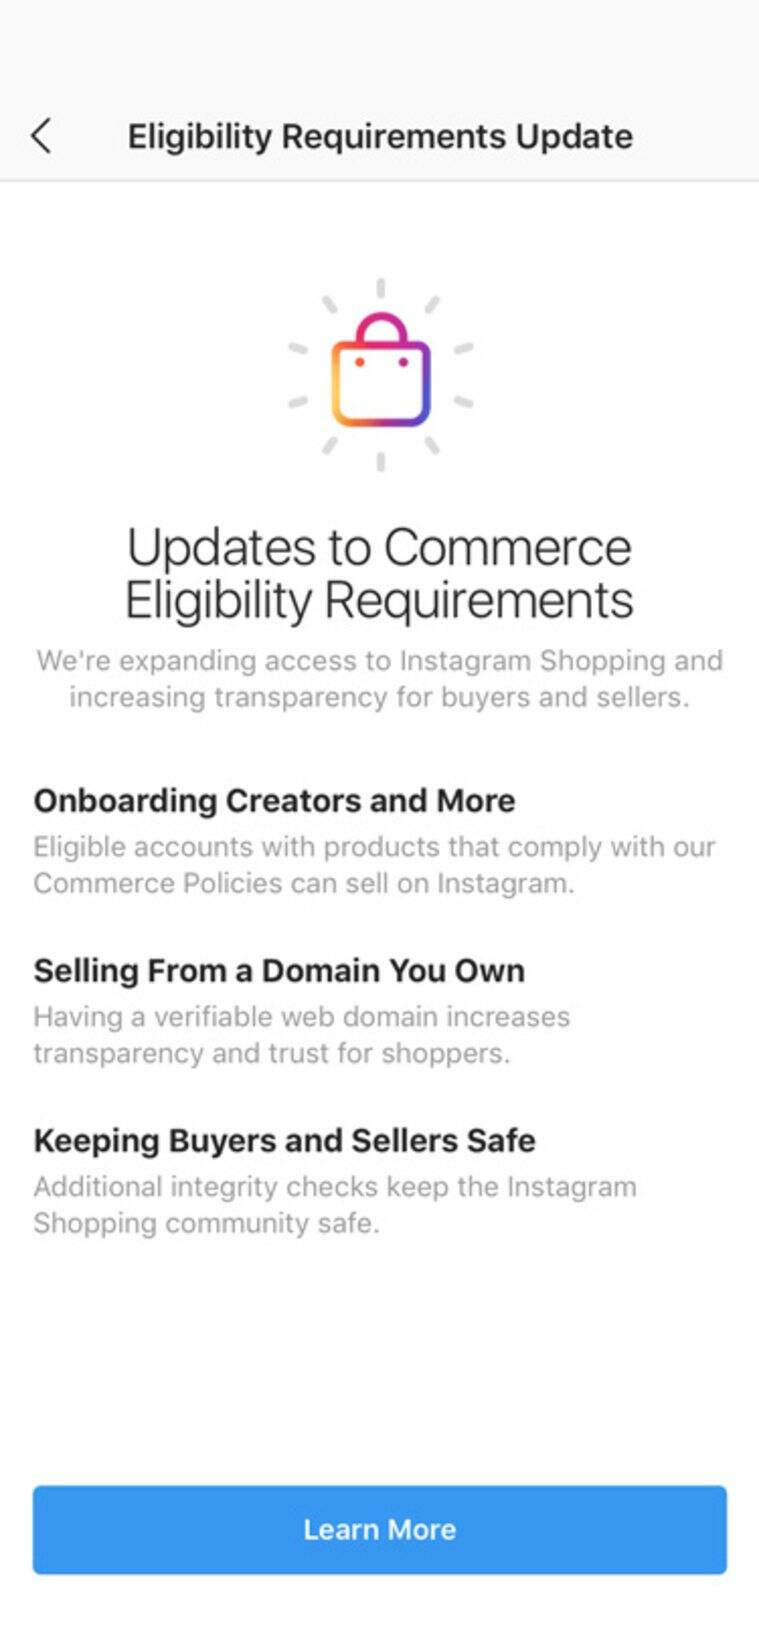 instagram shop, instagram shopping, instagram shop rules, how to set up instagram shop, setting up insta shop, instagram influencer shop